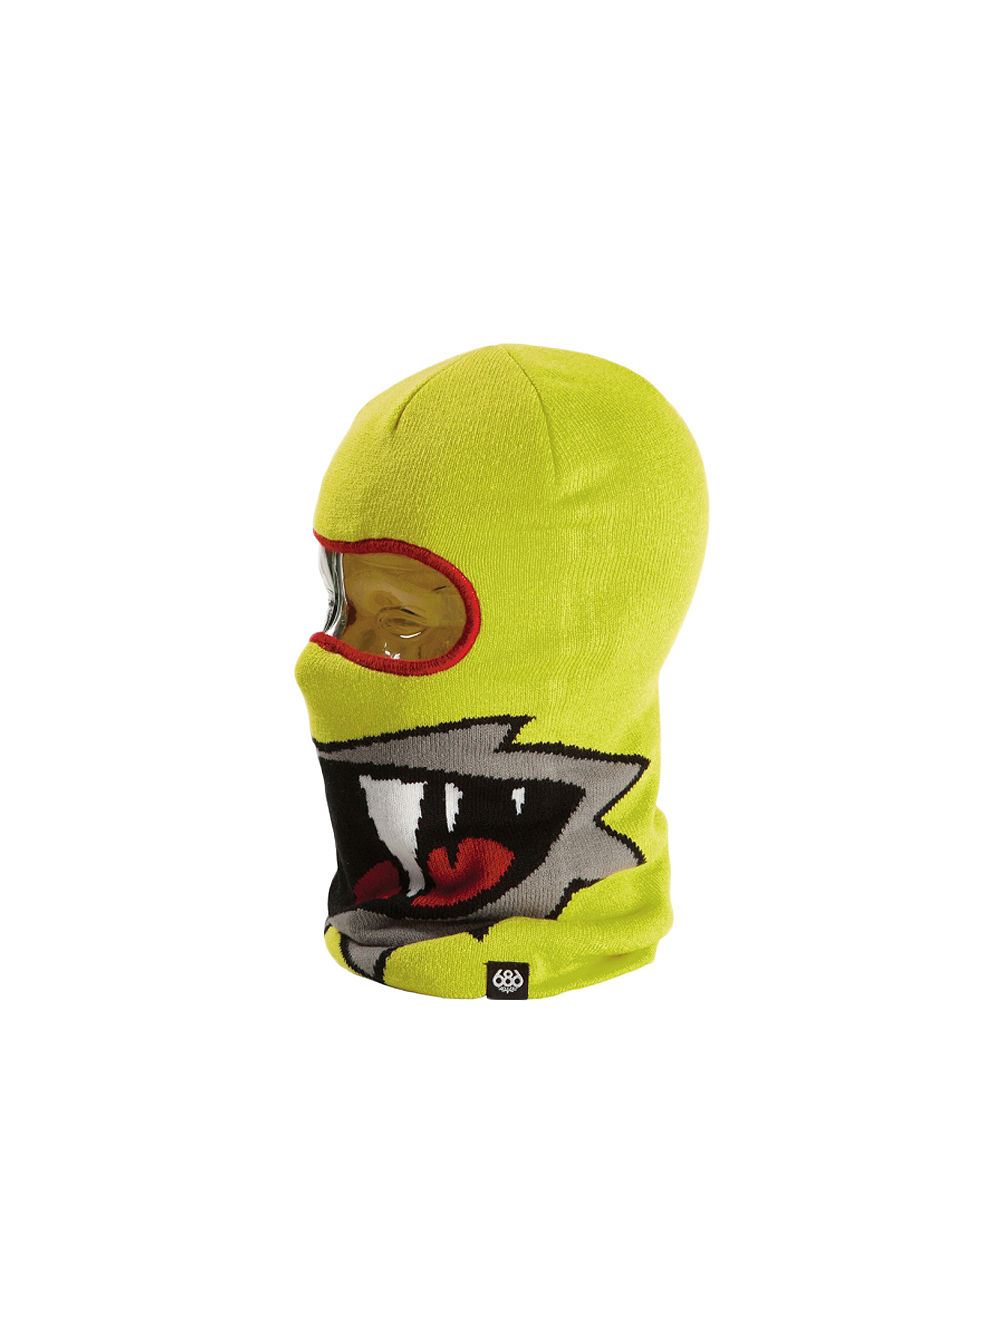 686 Snaggle Dad Full Face Beanie